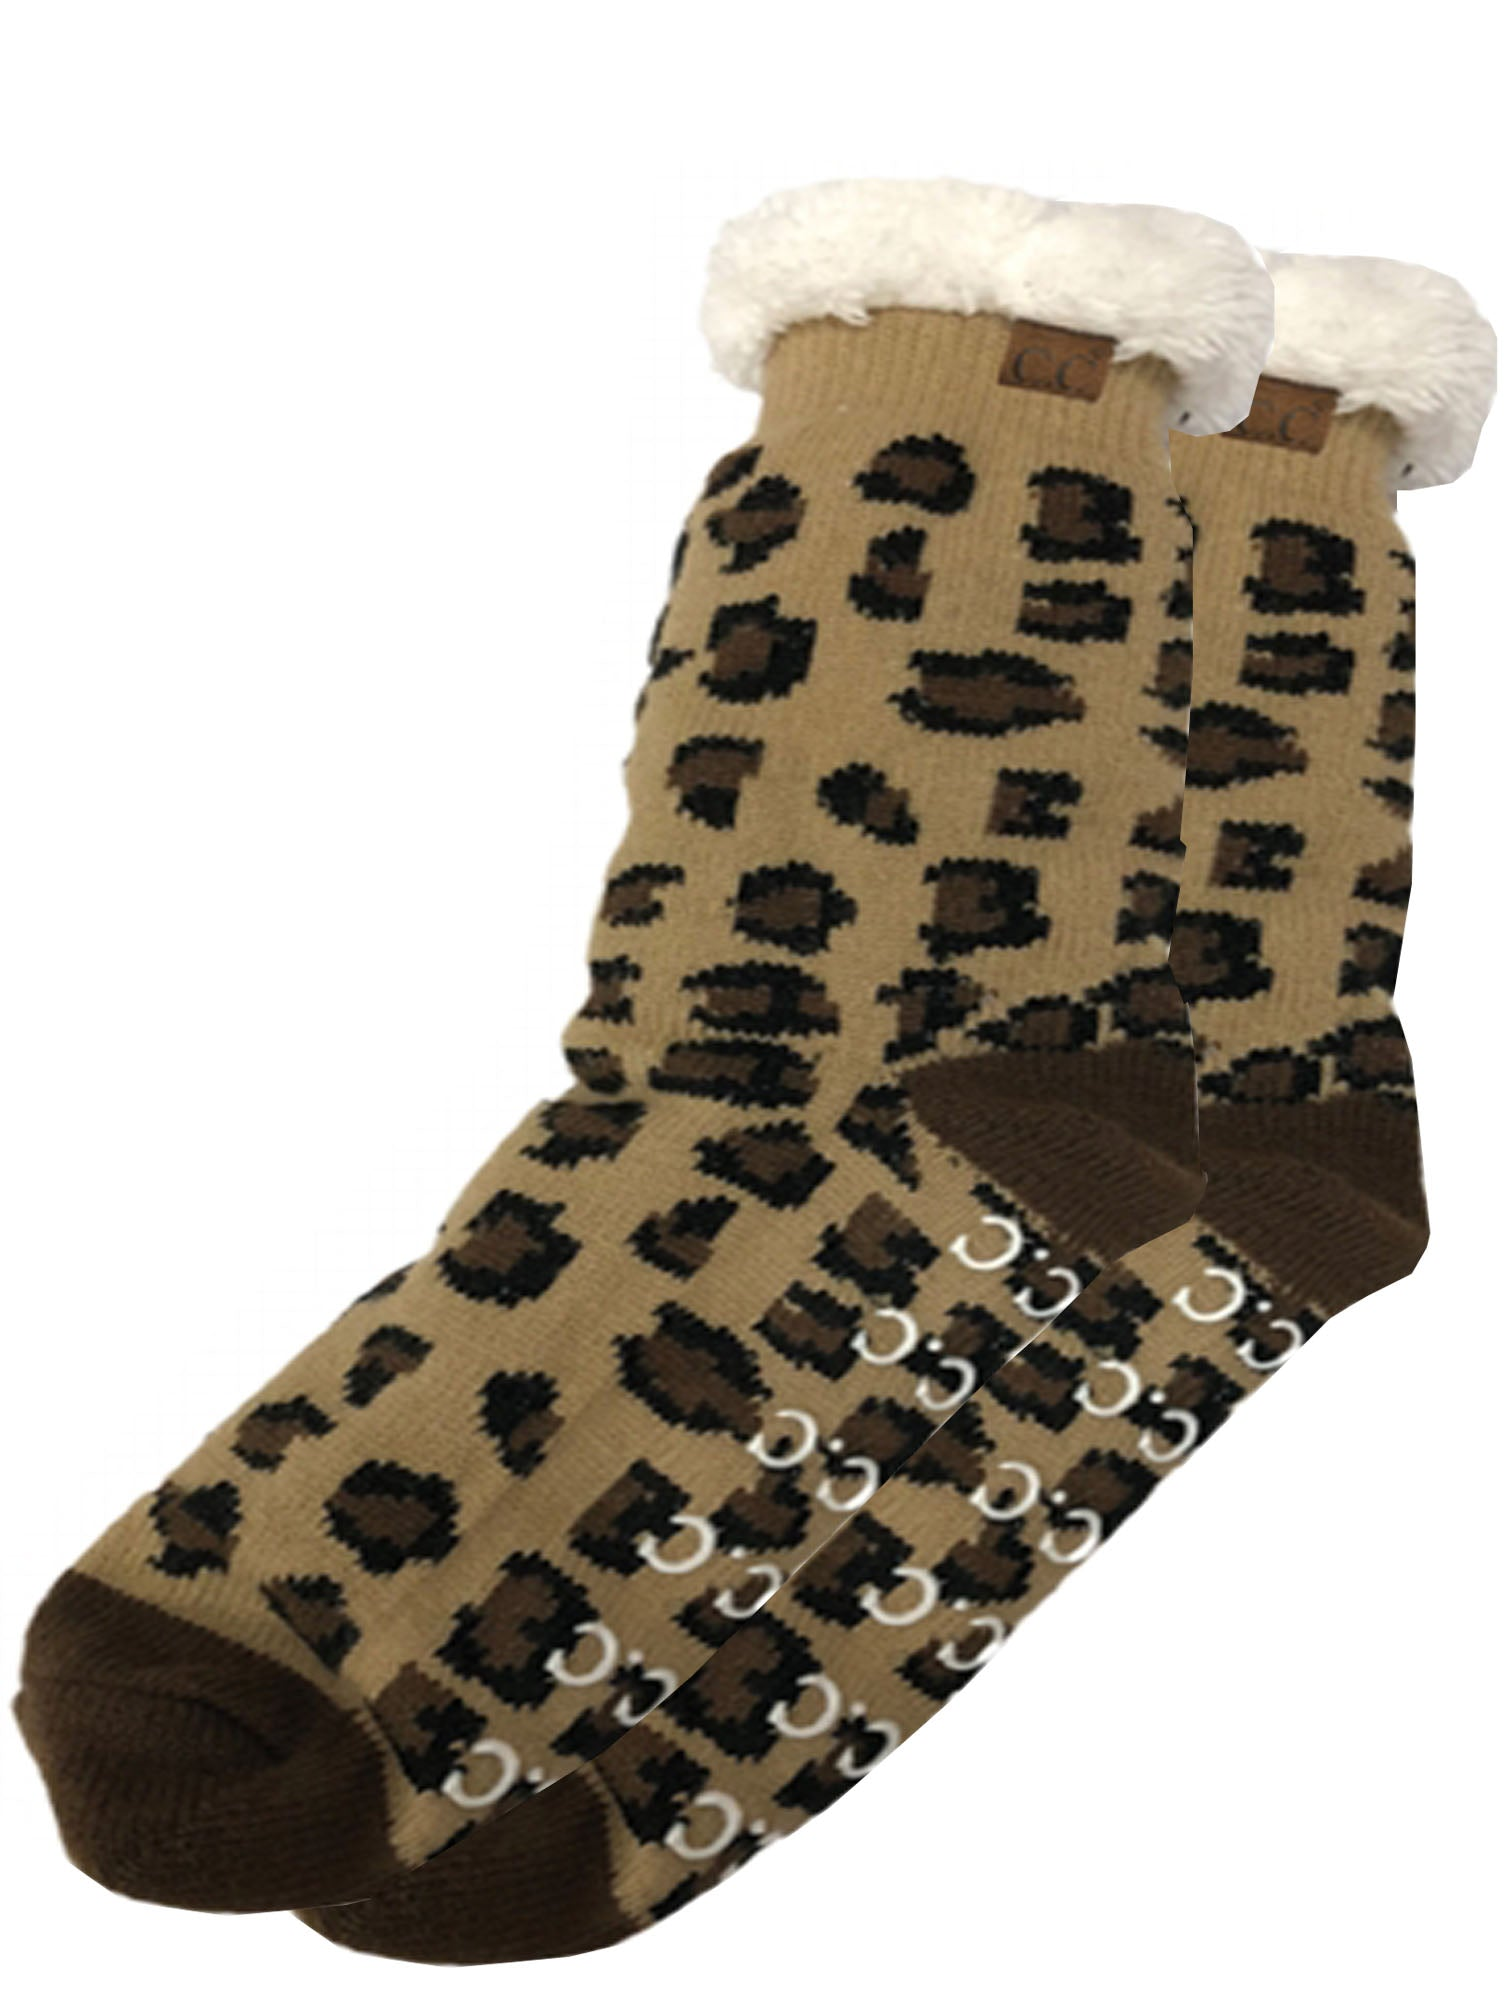 SL-05 C.C Sherpa Socks Leopard Brown